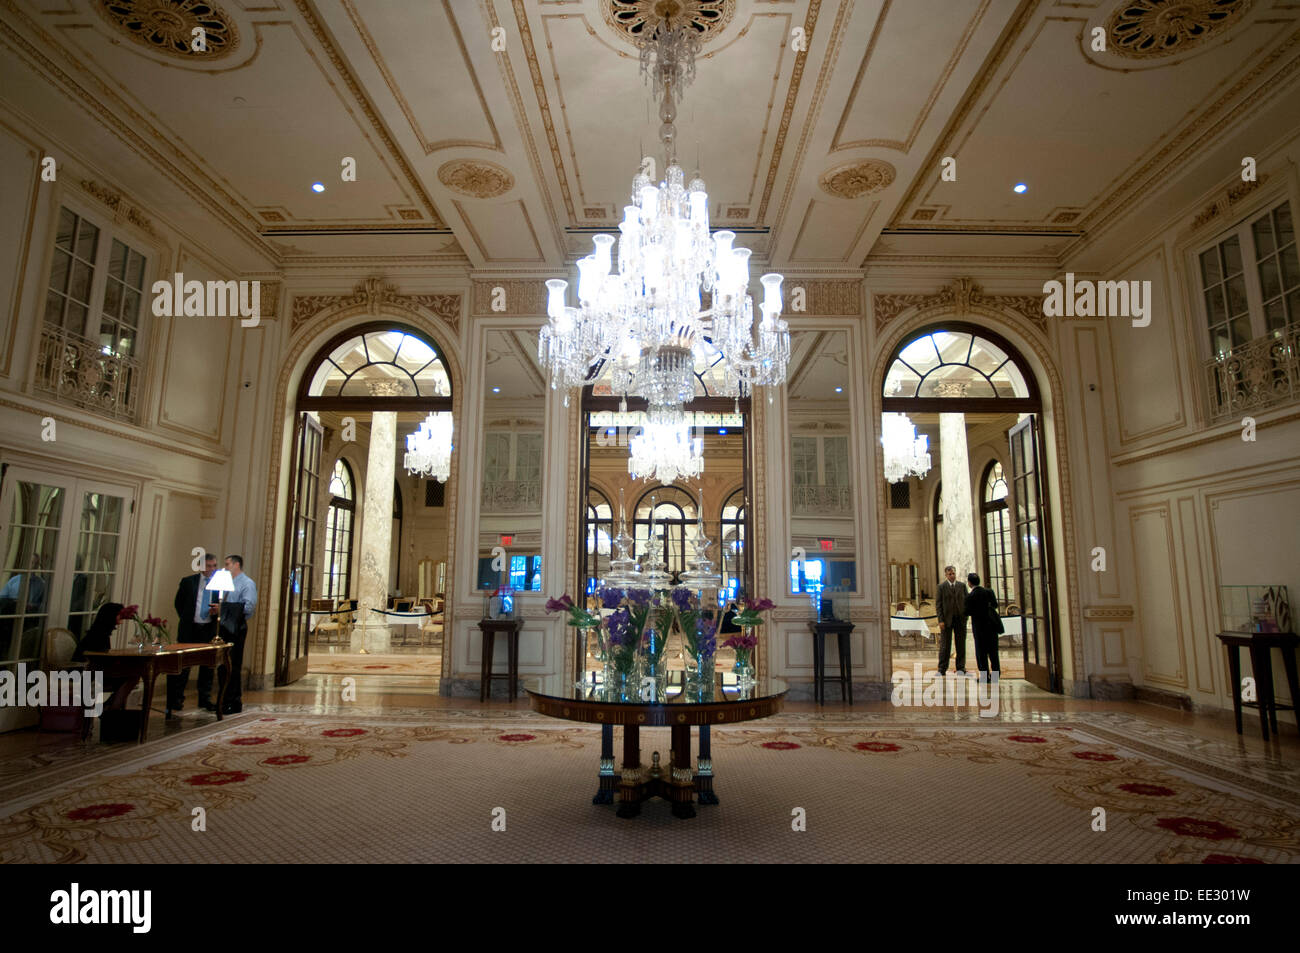 lobby of the plaza hotel new york usa the plaza hotel landmark stock photo royalty free image. Black Bedroom Furniture Sets. Home Design Ideas